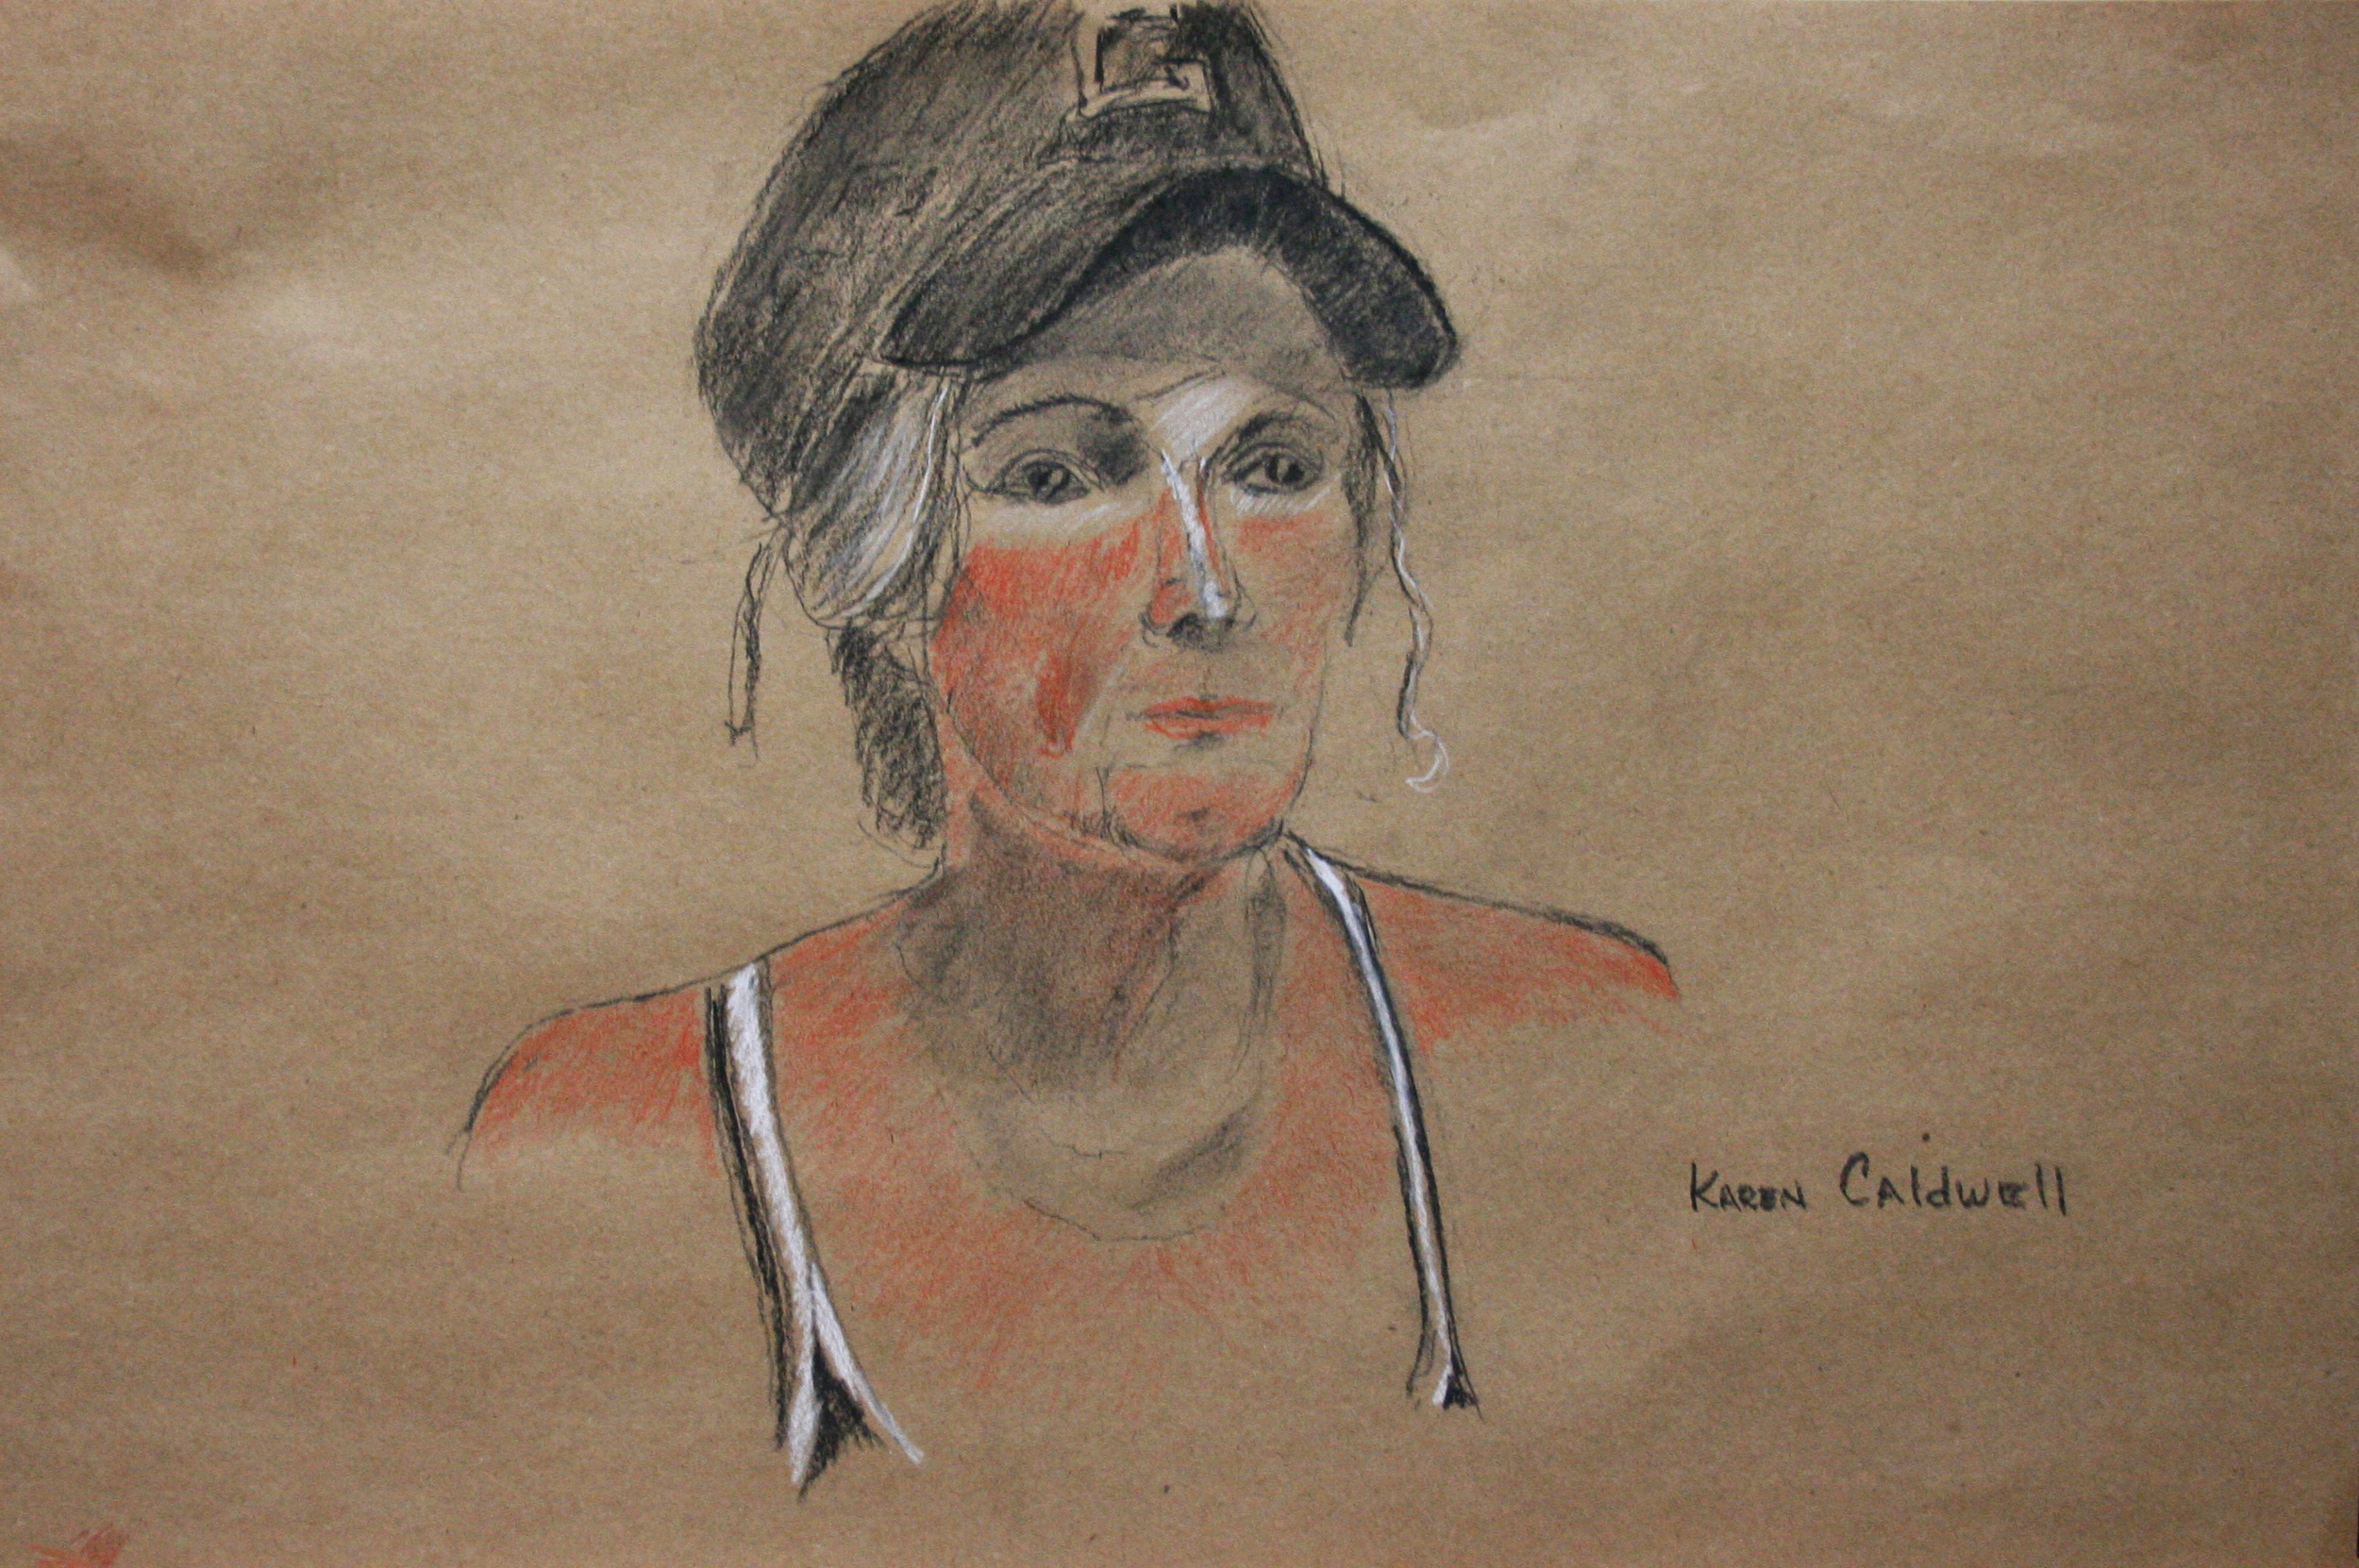 Karen Caldwell did this two and a half hour drawing.